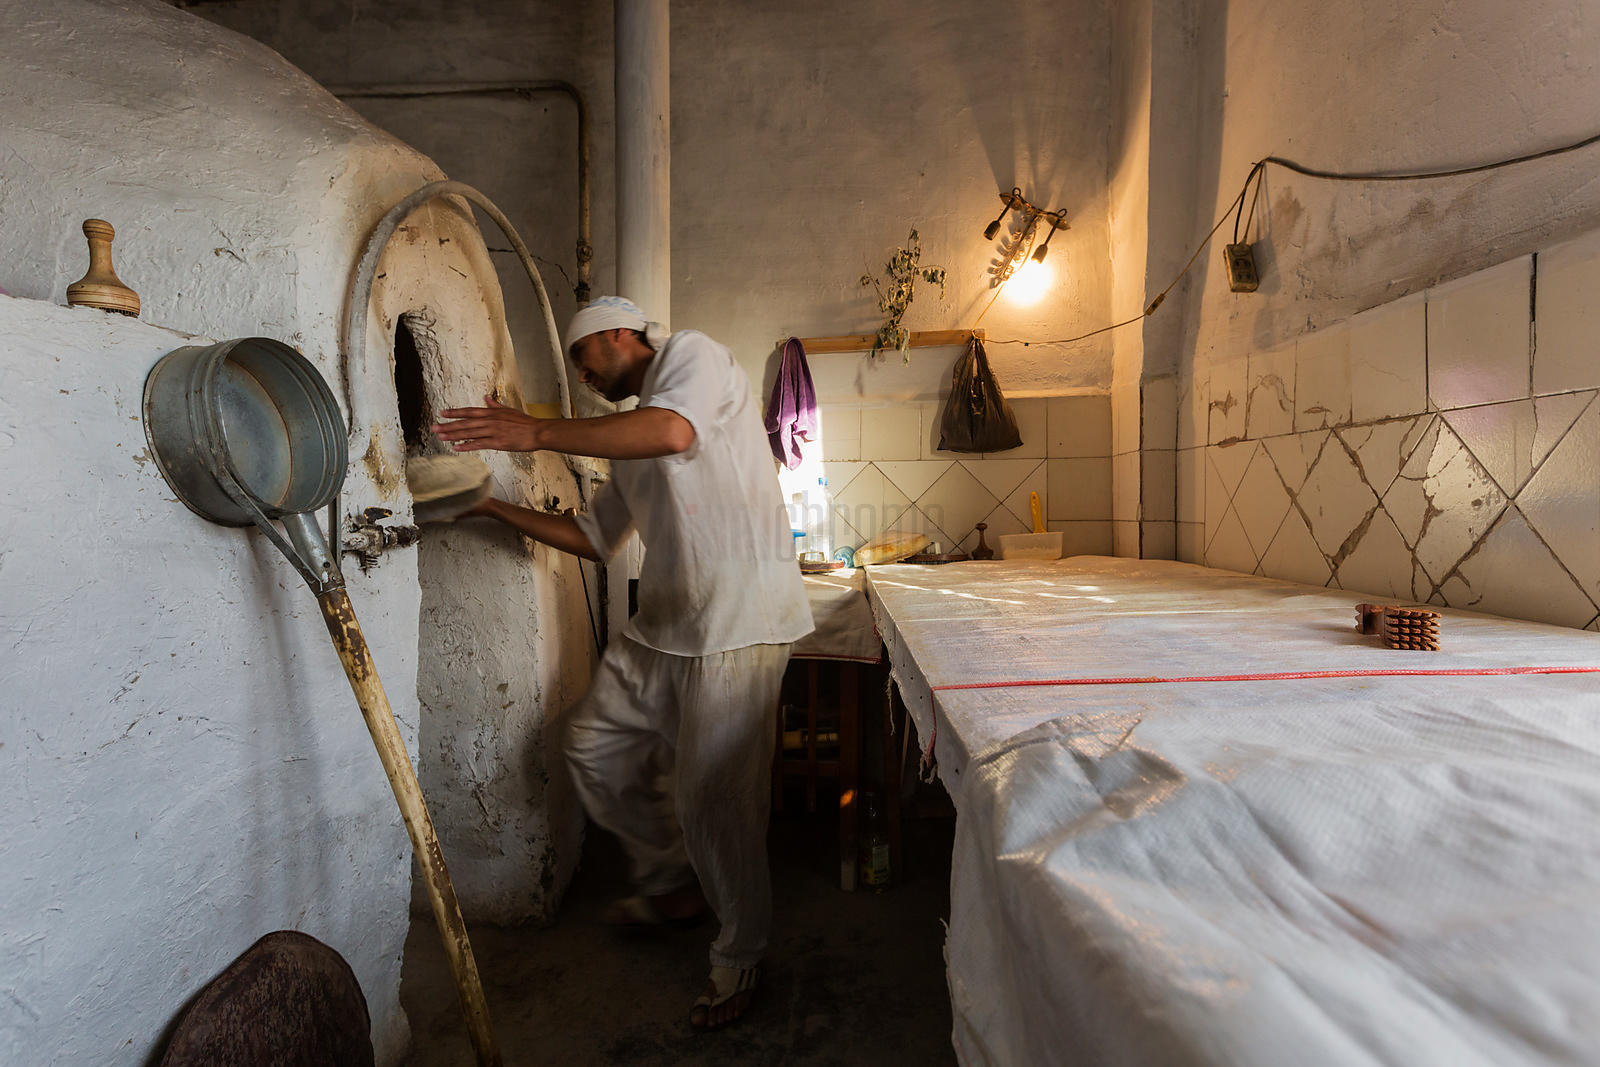 A Baker Places Bread Dough in the Tandoor Oven.